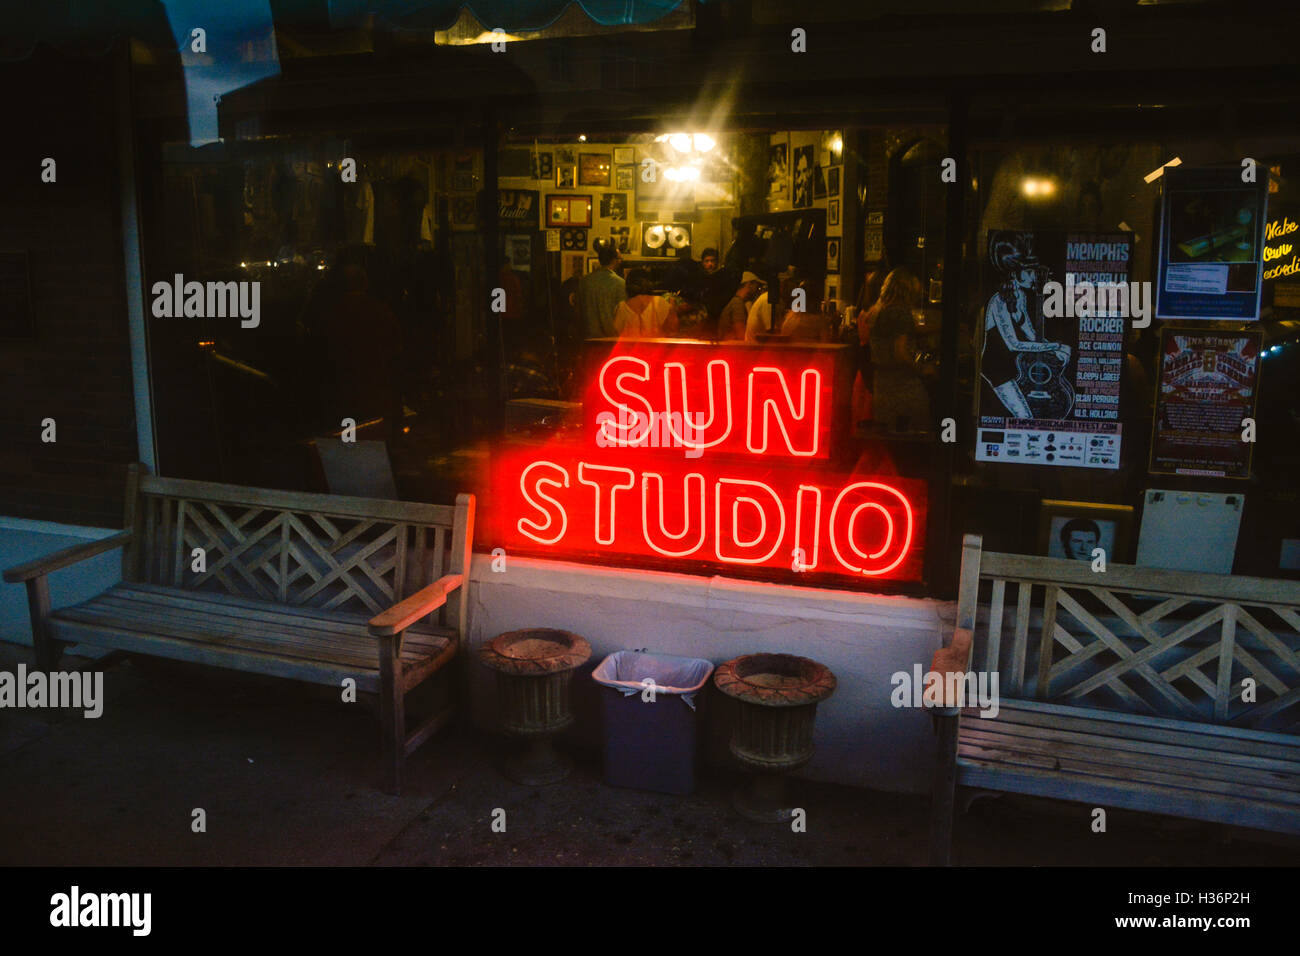 The exterior storefront of Sun Studio with red neon signage lights at evening in Memphis, TN - Stock Image